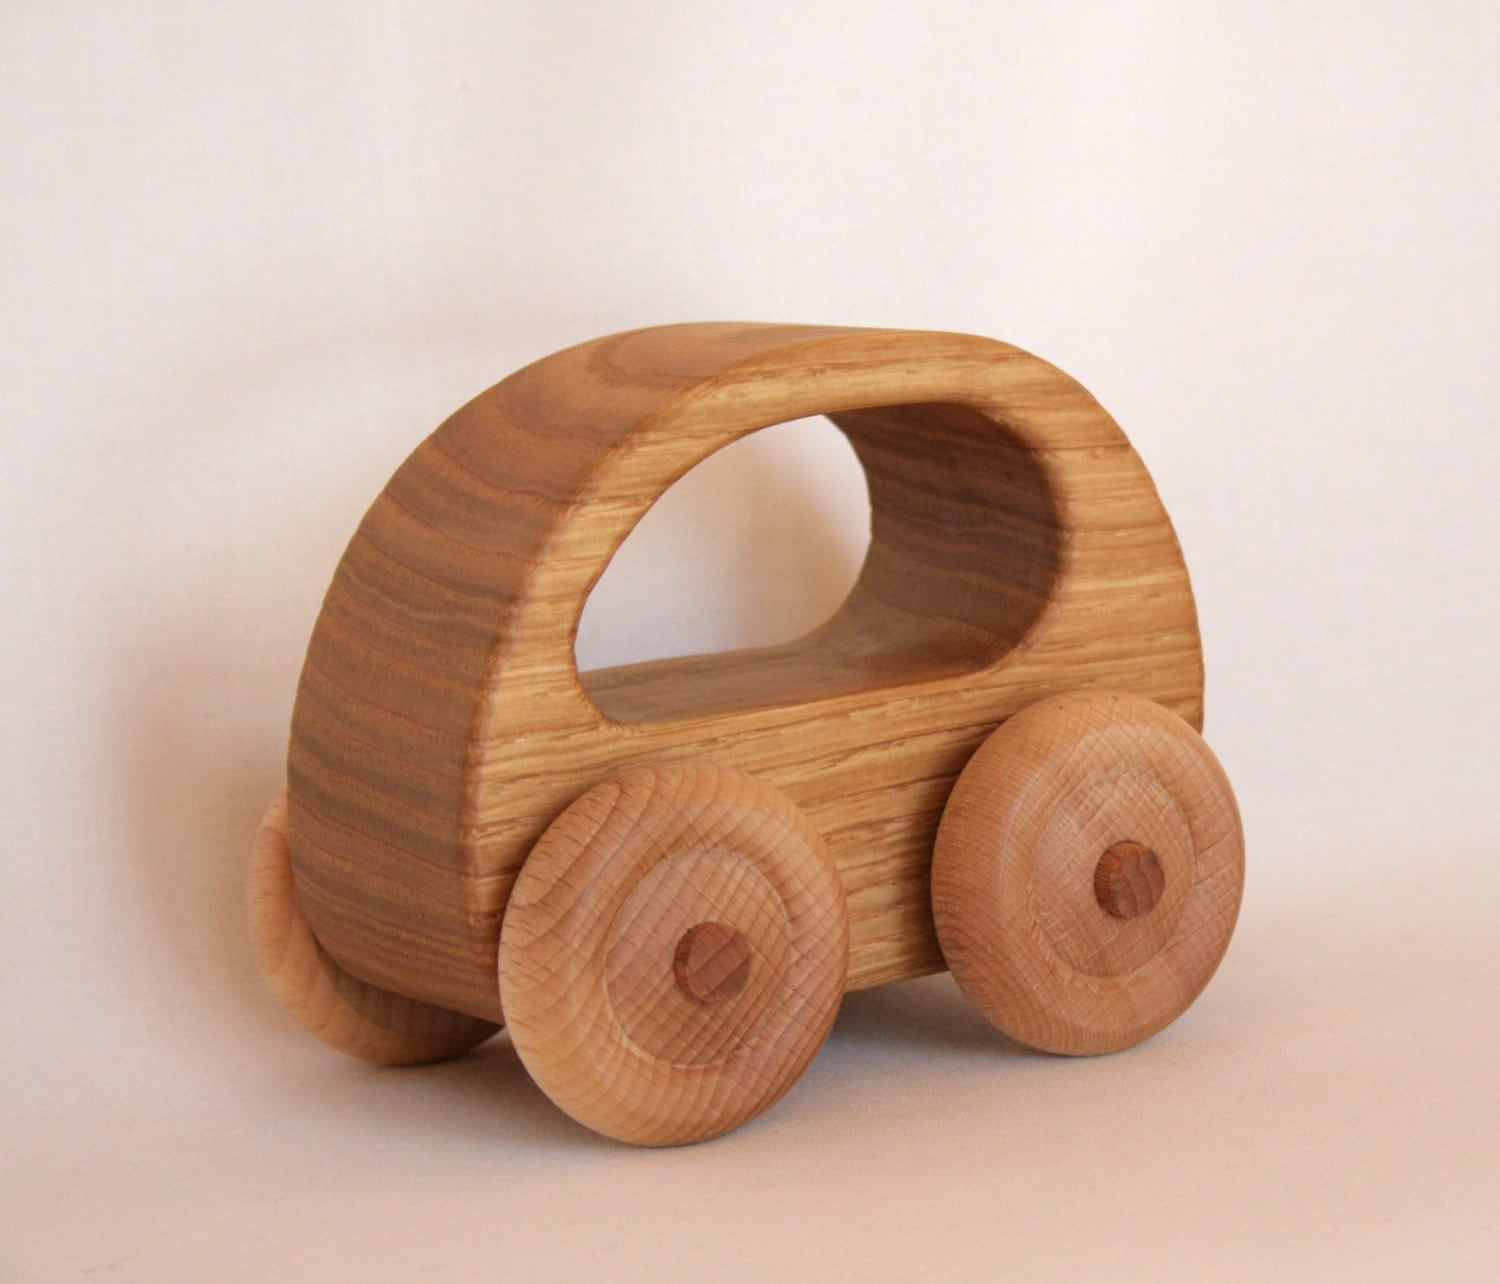 Cool Wooden Toy Cars wooden bus wooden toy car walnut wood-eco by ...